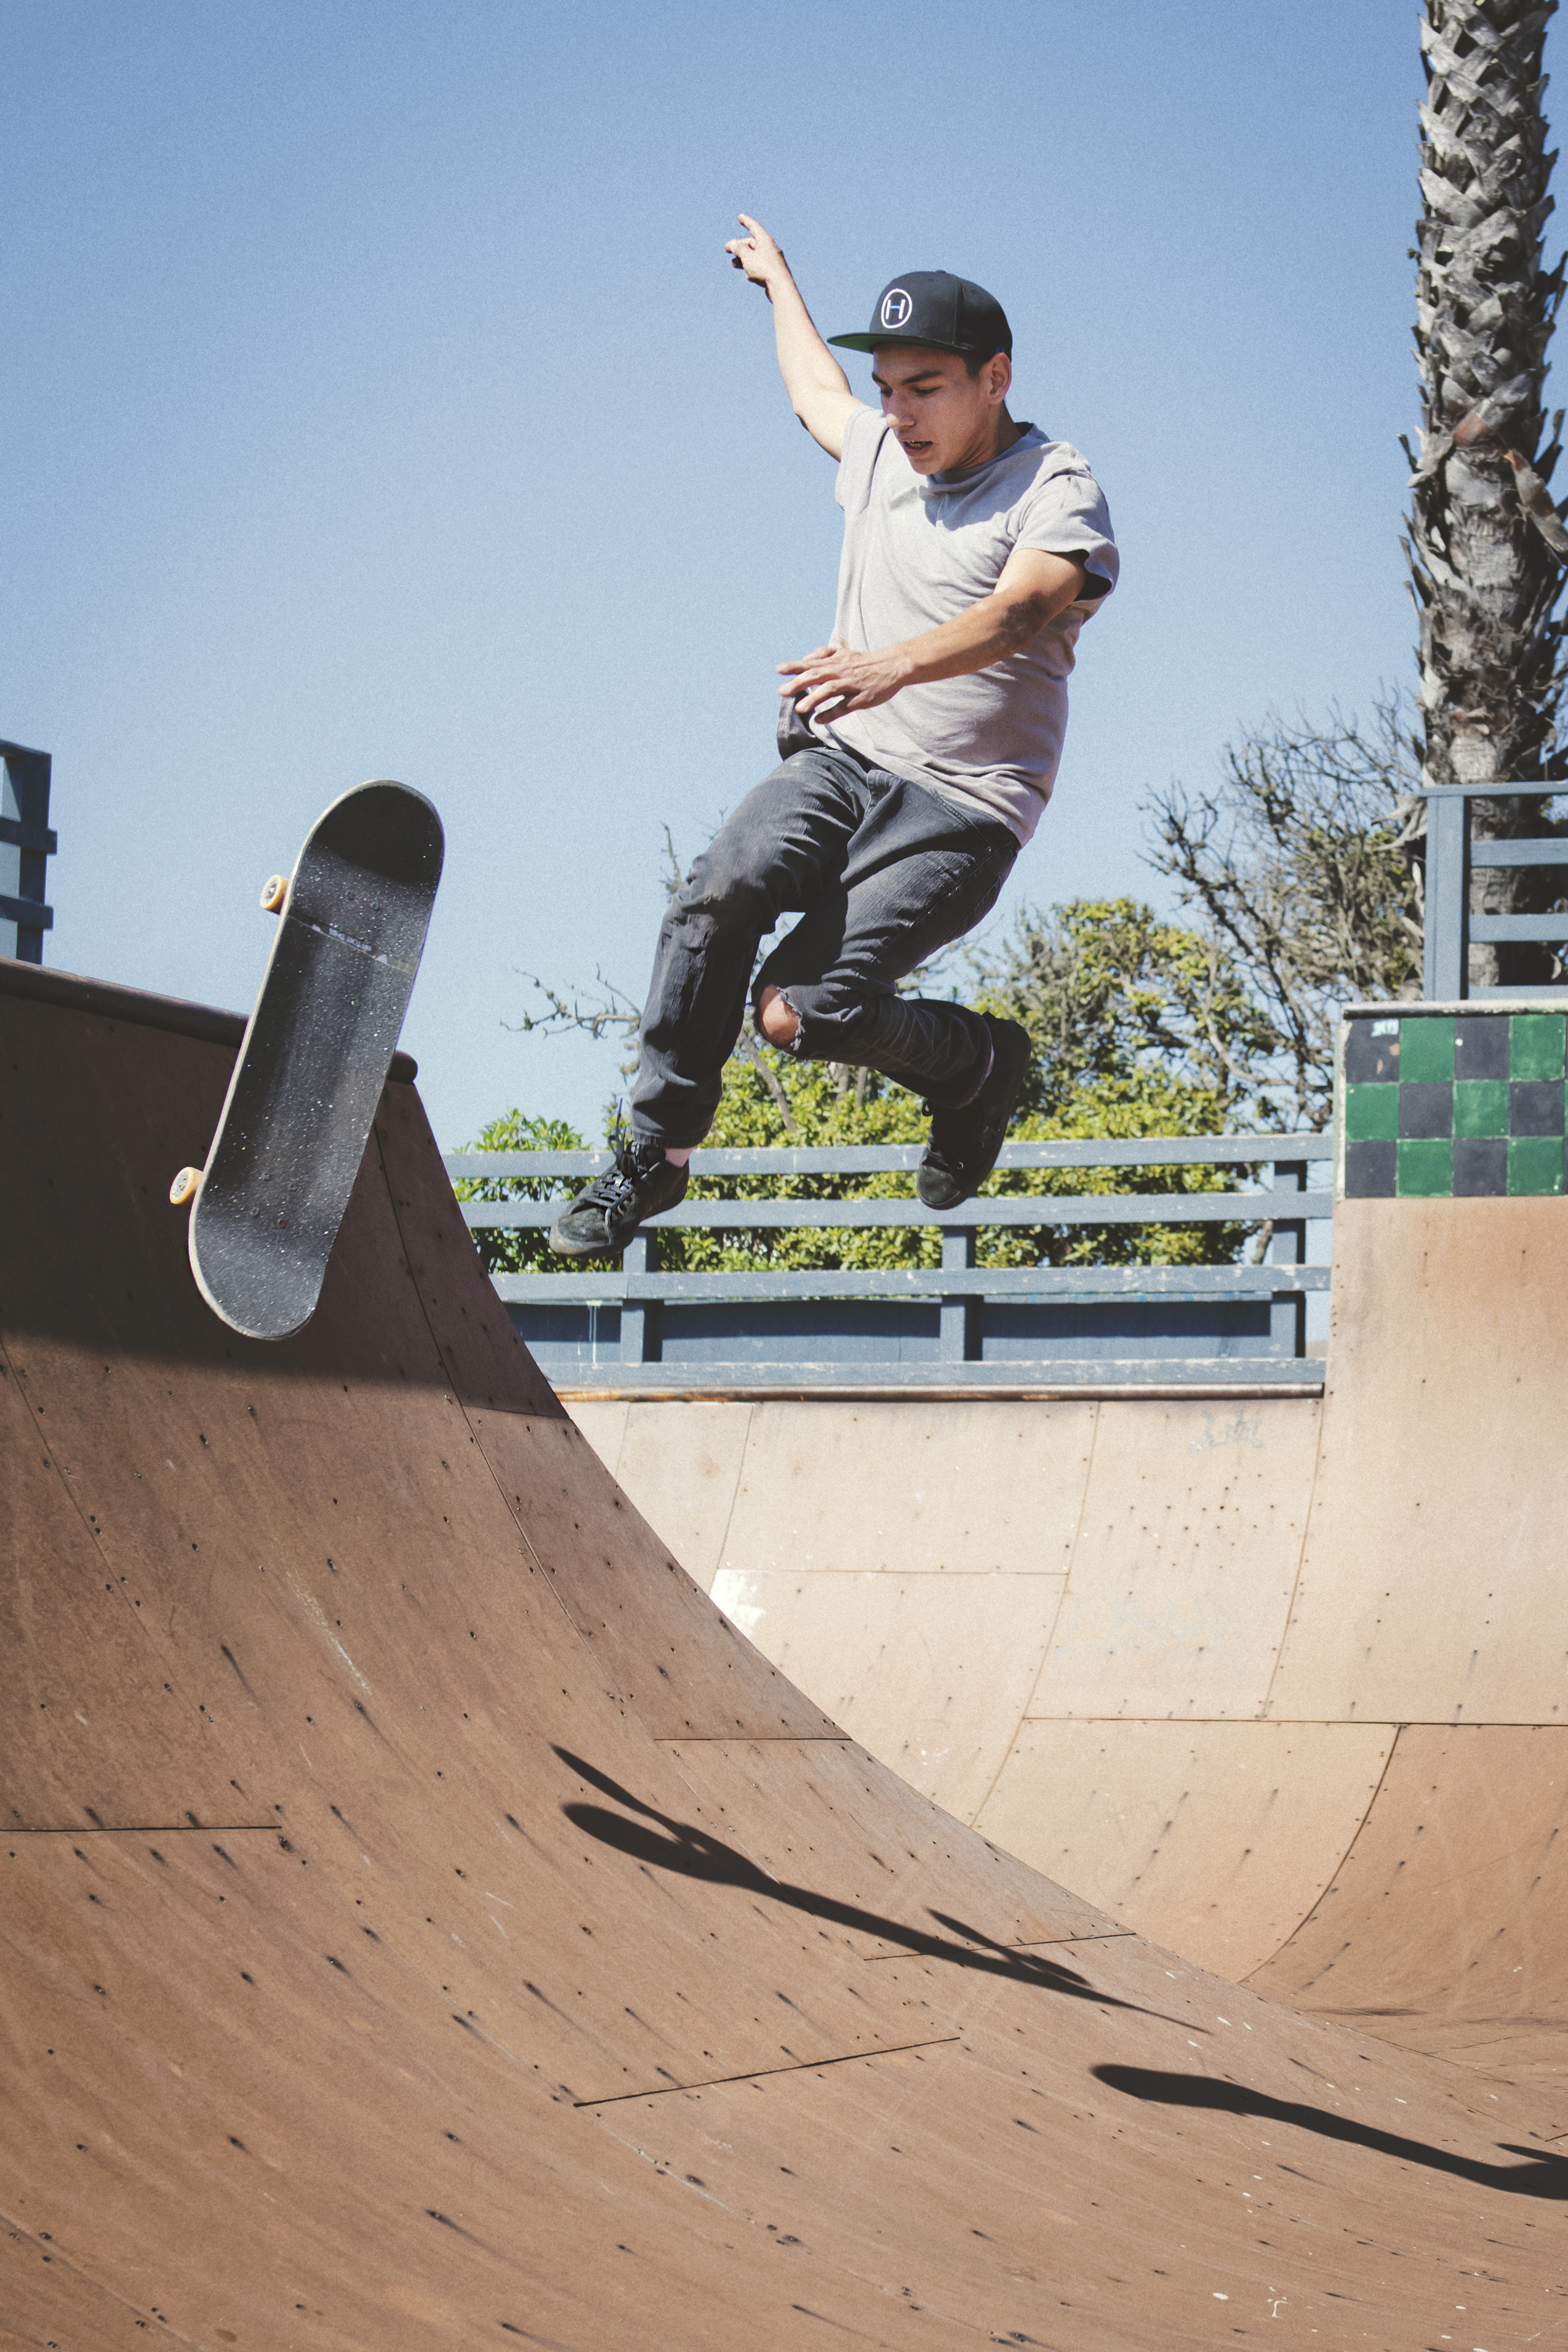 Custom Wallpapers For Iphone X Boy Skateboarding Grayscale Photography 183 Free Stock Photo